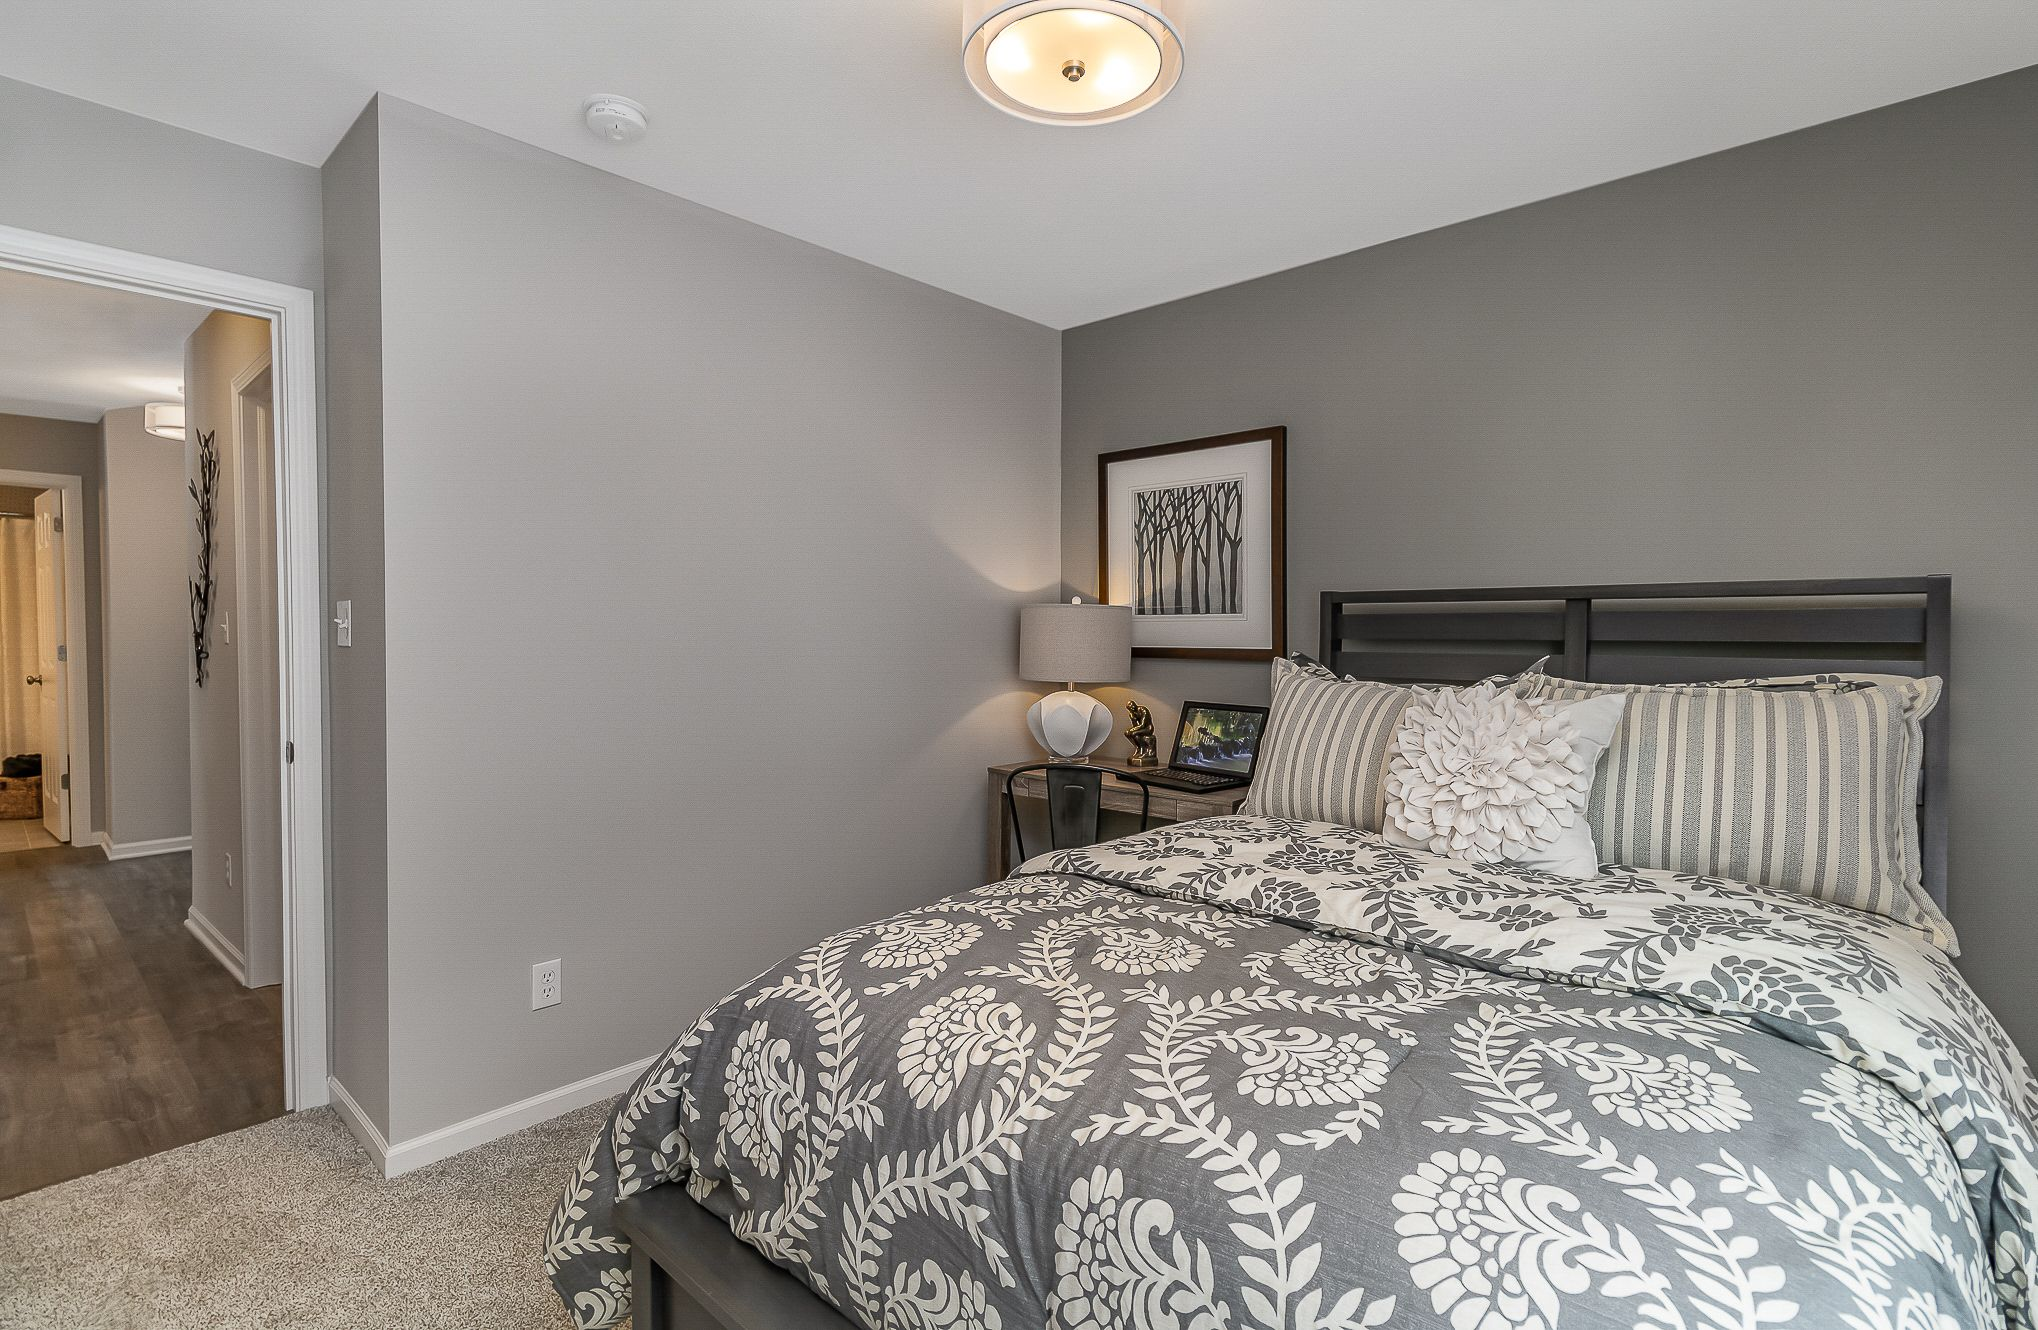 Bedroom featured in the Cordoba By Olthof Homes in Indianapolis, IN